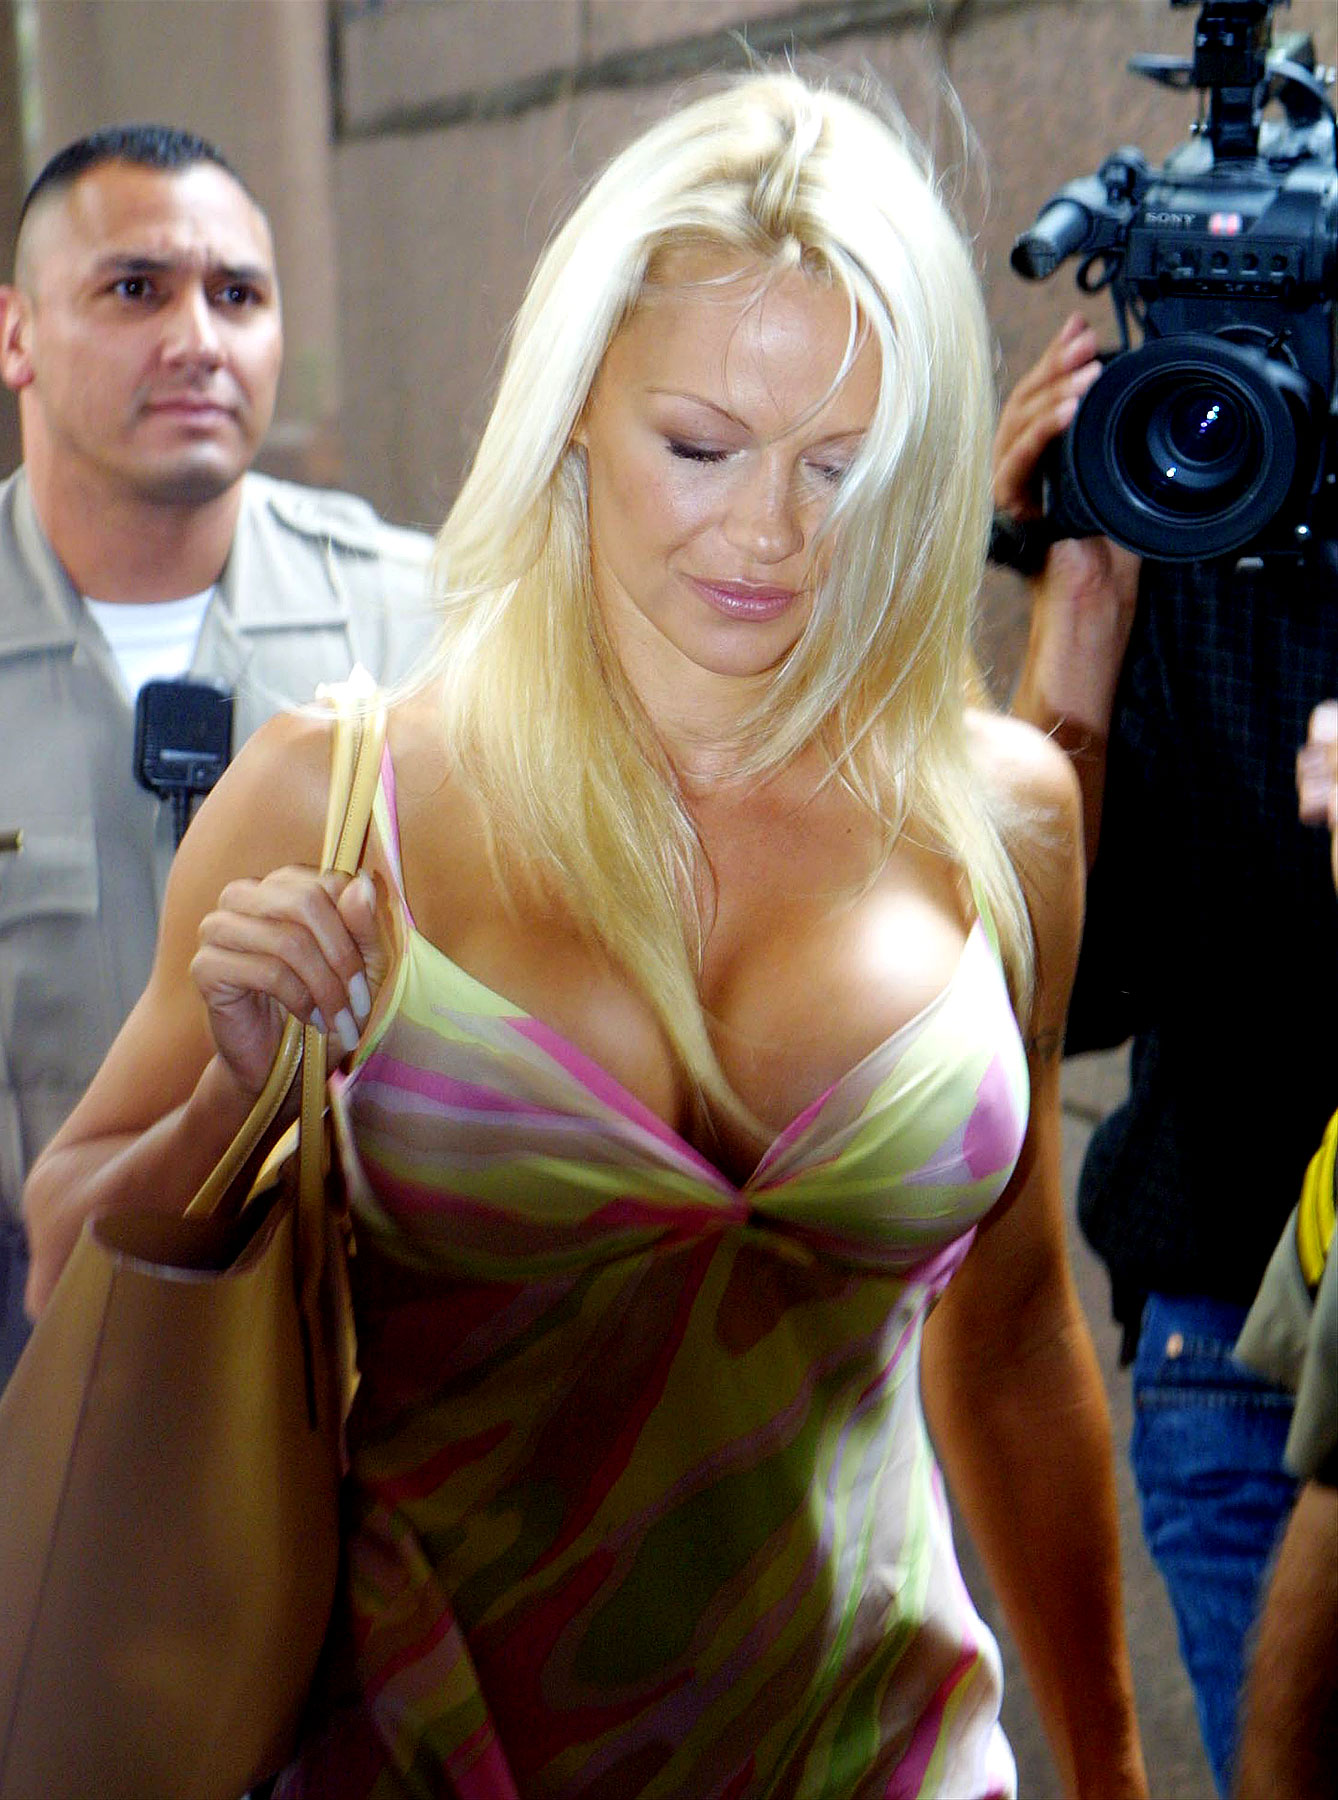 Celebrities In Questionable Courthouse Couture (PHOTOS)